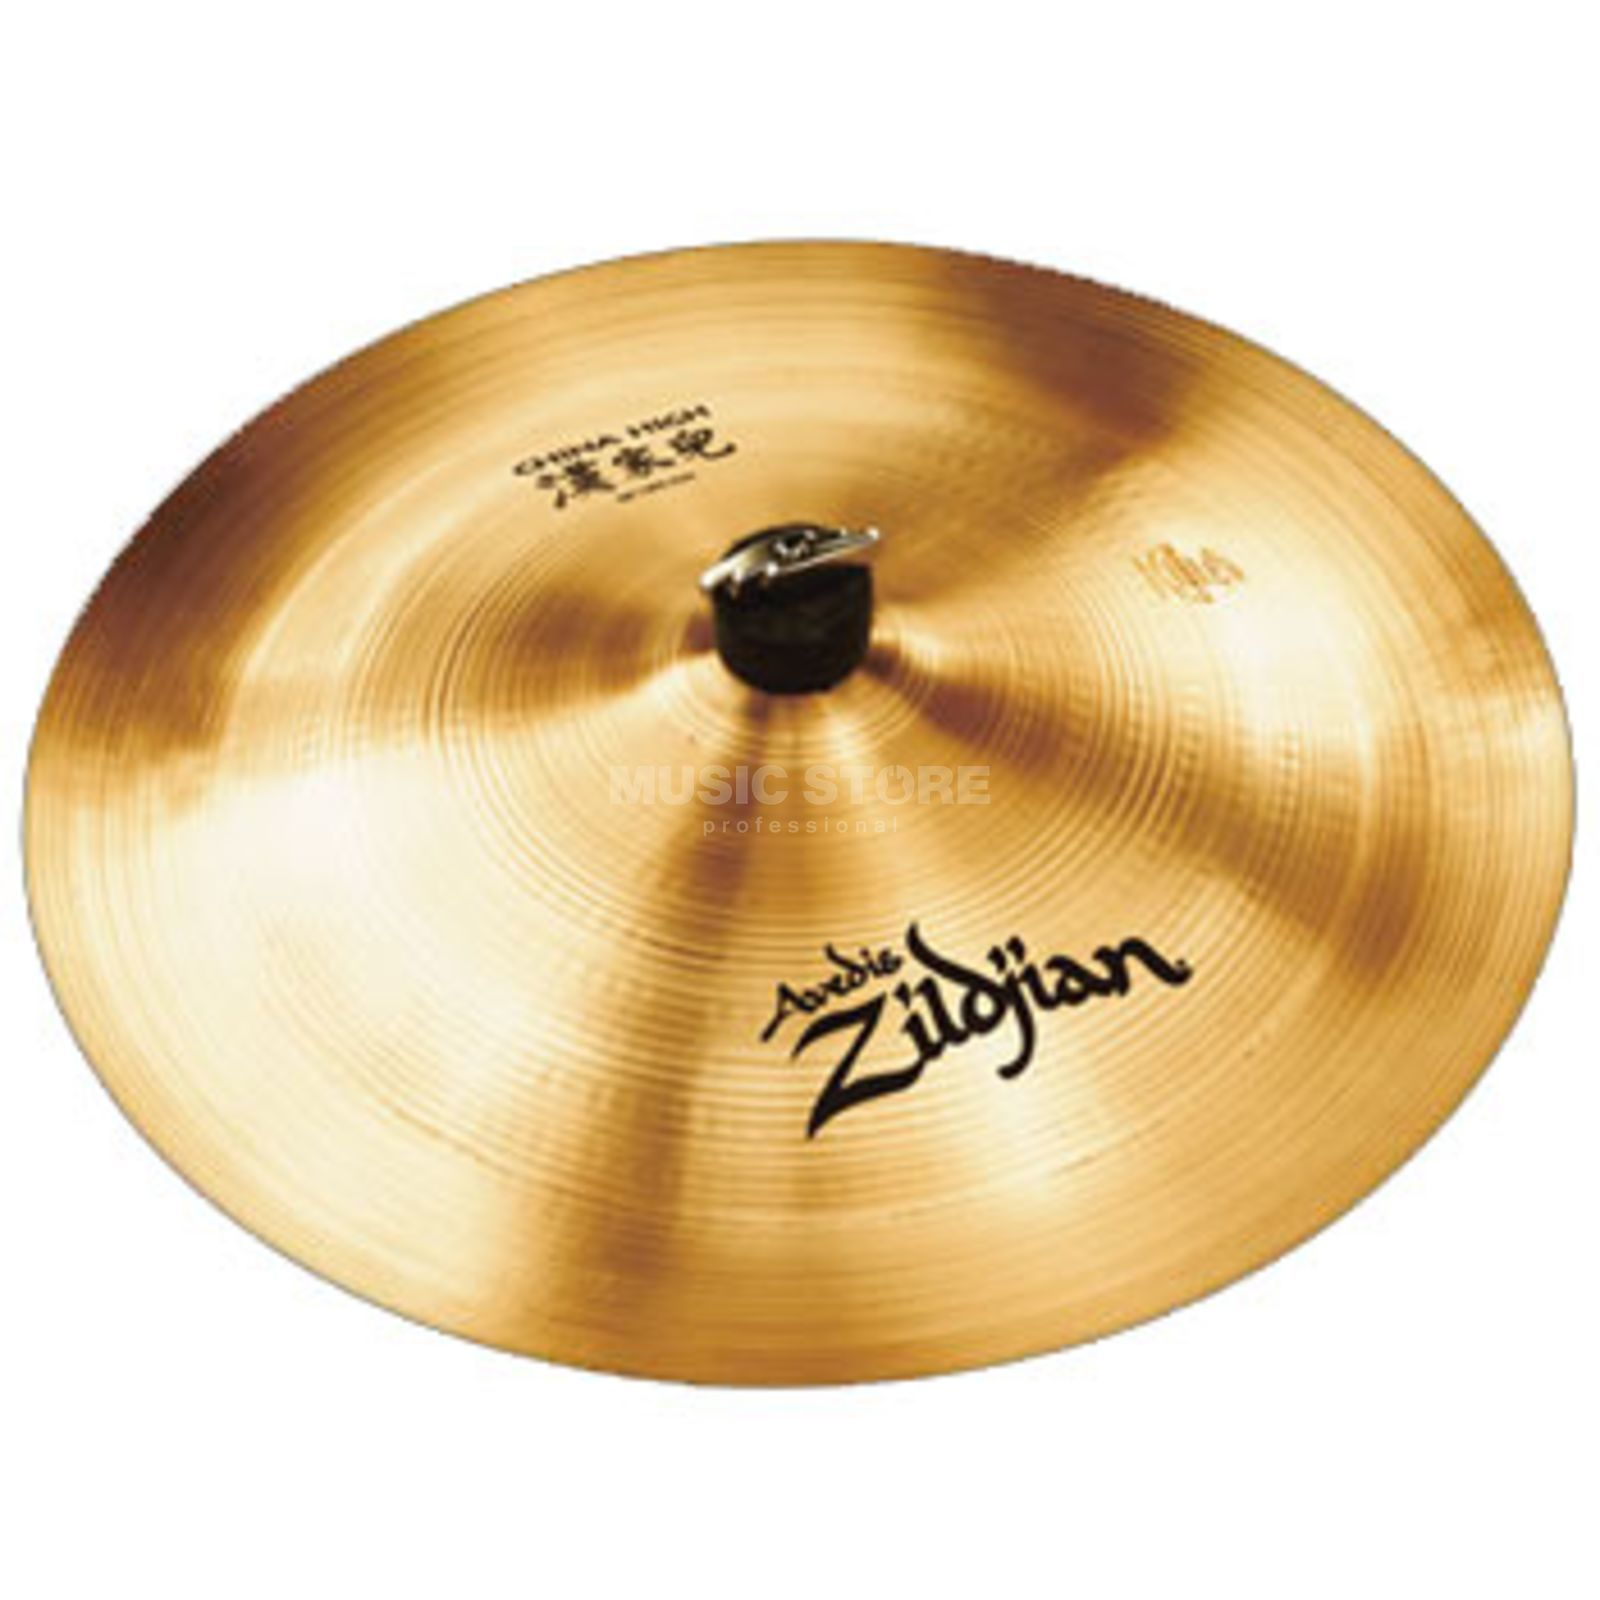 "Zildjian Avedis China Boy High 16"", Traditional Finish Produktbillede"